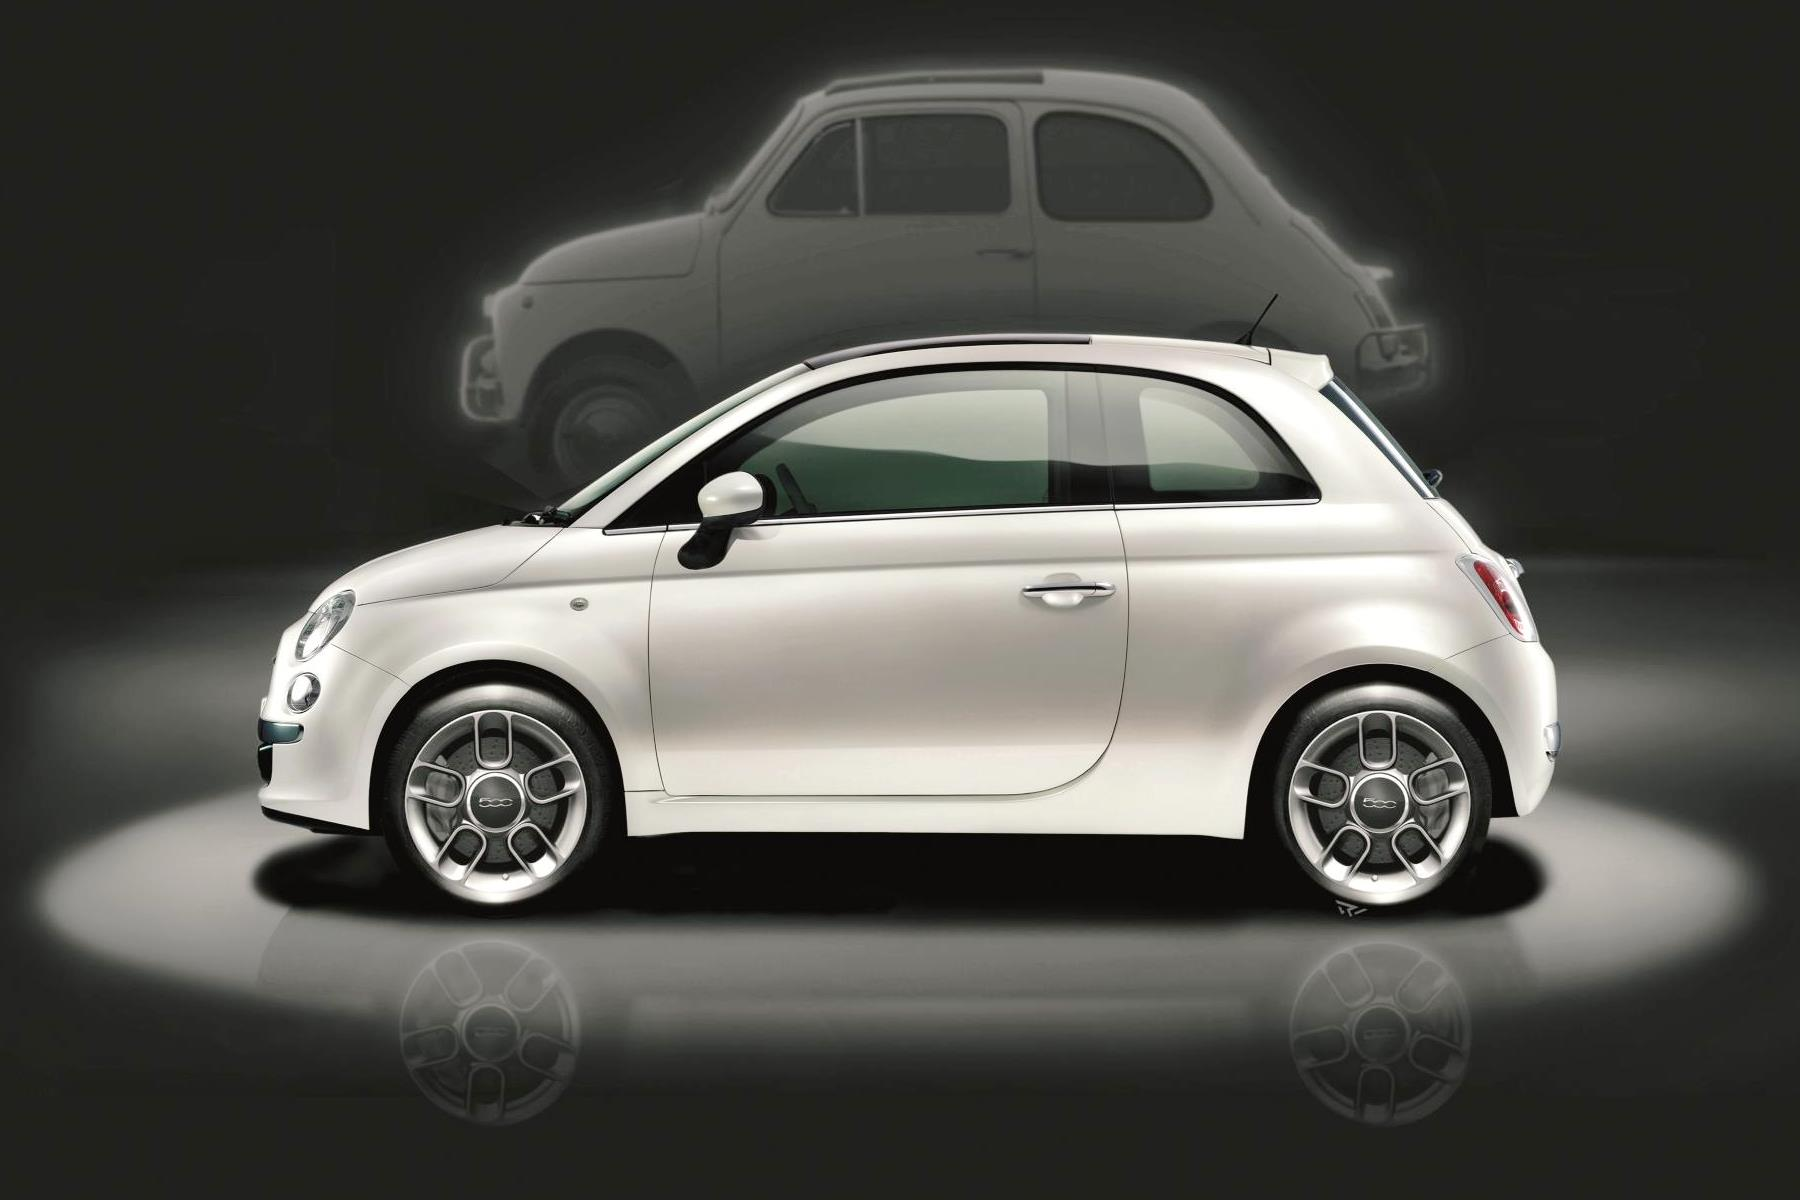 Reborn FIAT 500 was launched on July 4 2007